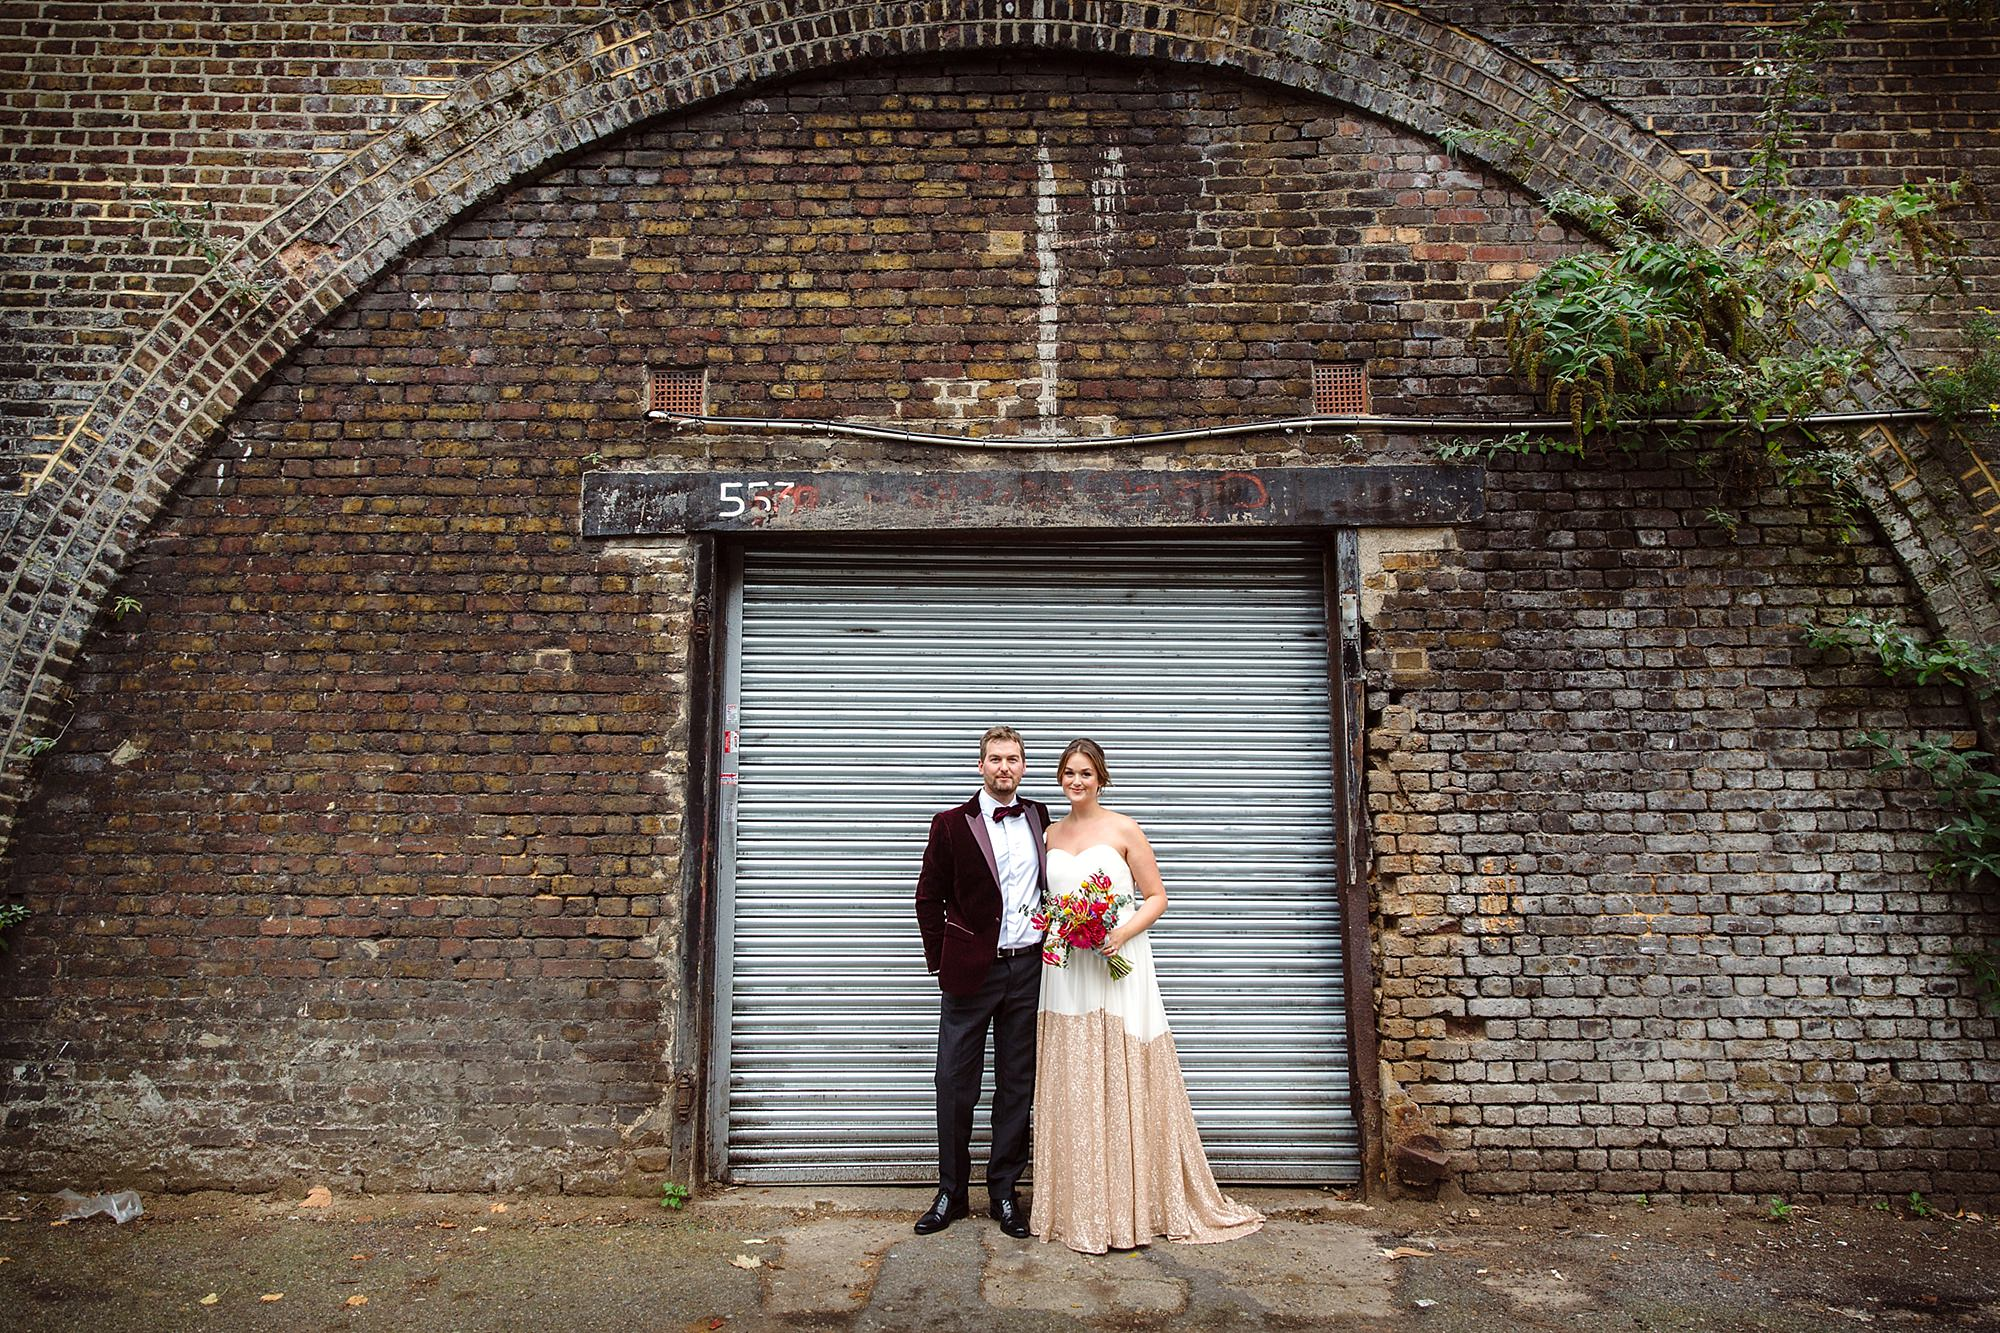 Fun London Wedding bride and groom standing in front of brixton railway arch